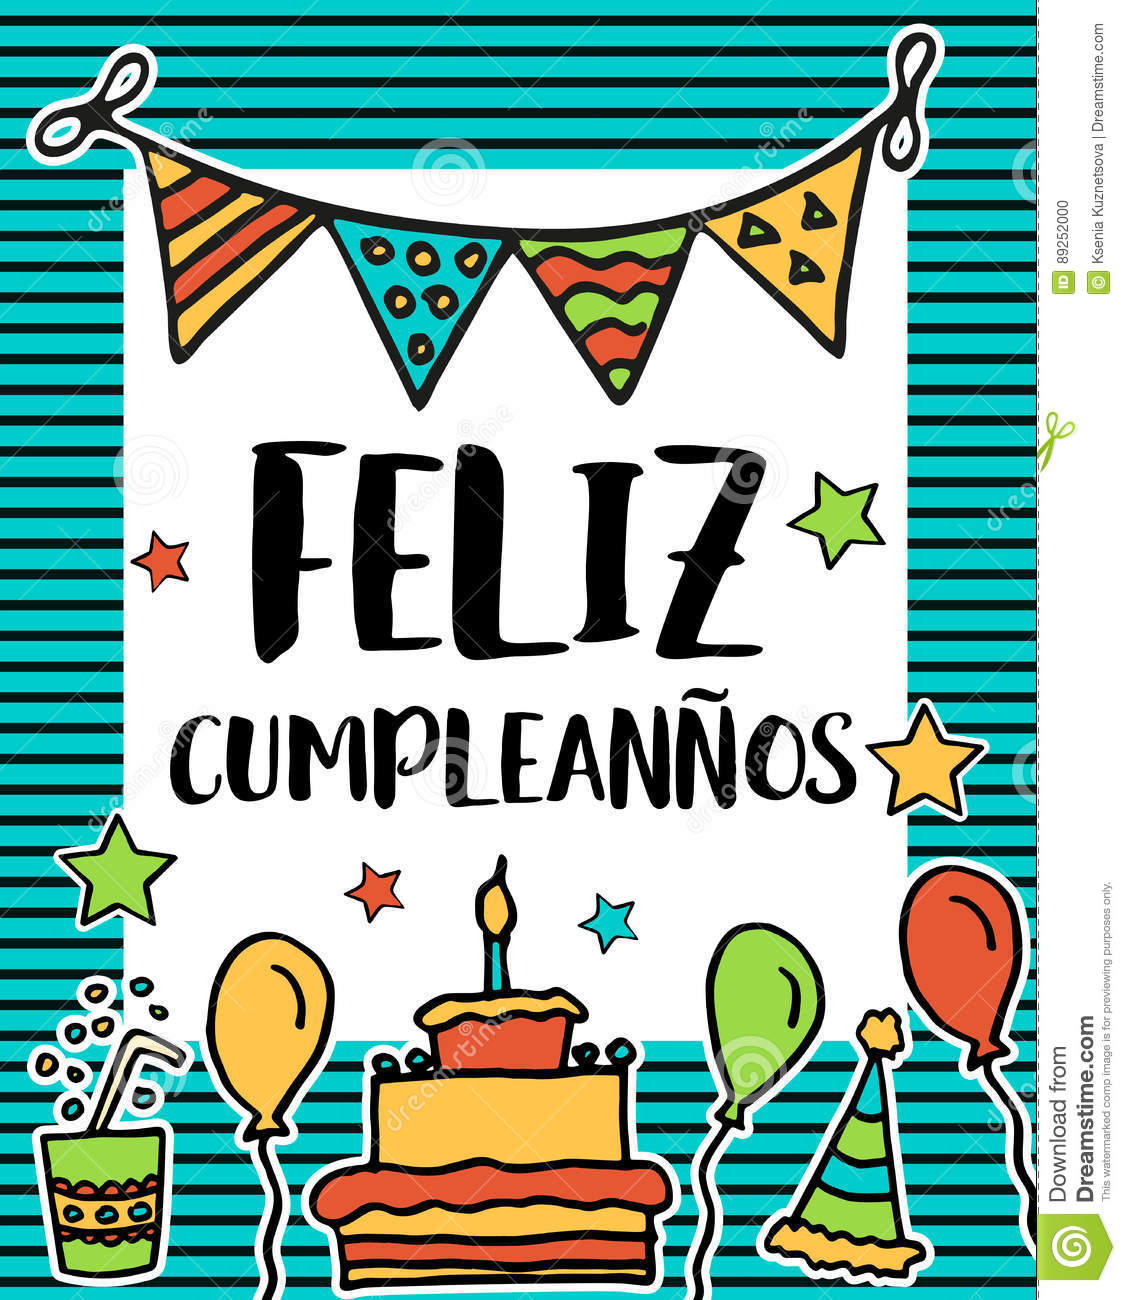 cumpleanos feliz  happy birthday in spanish stock photography cartoondealer com 27953126 celebrity clipart celebration clip art images